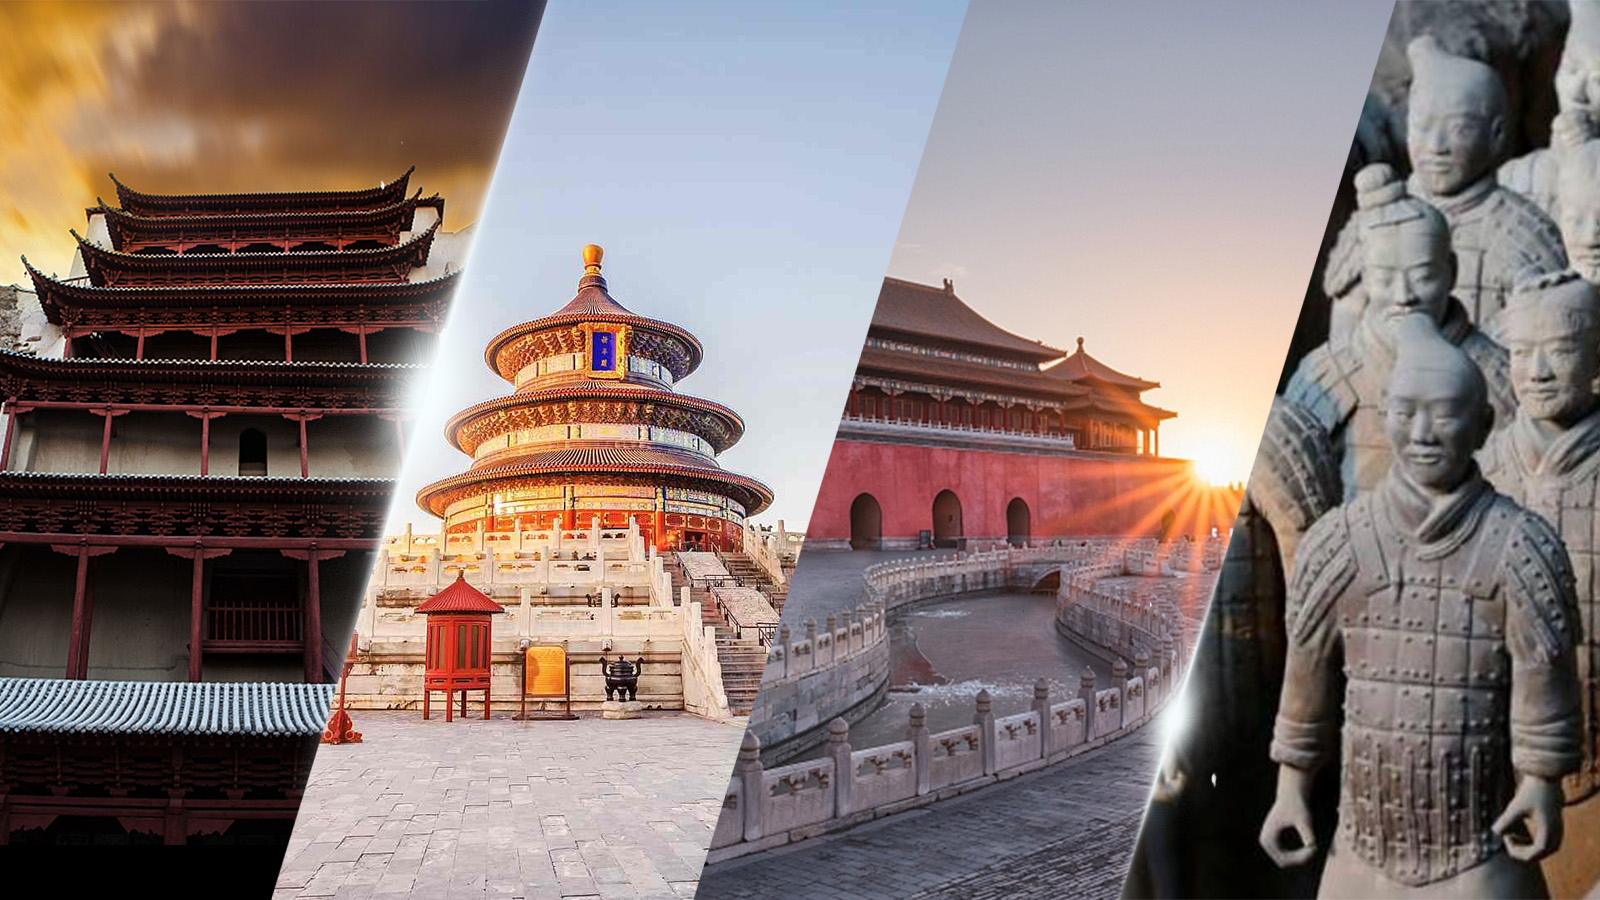 Museums in China use VR to offer online exhibitions amid epidemic